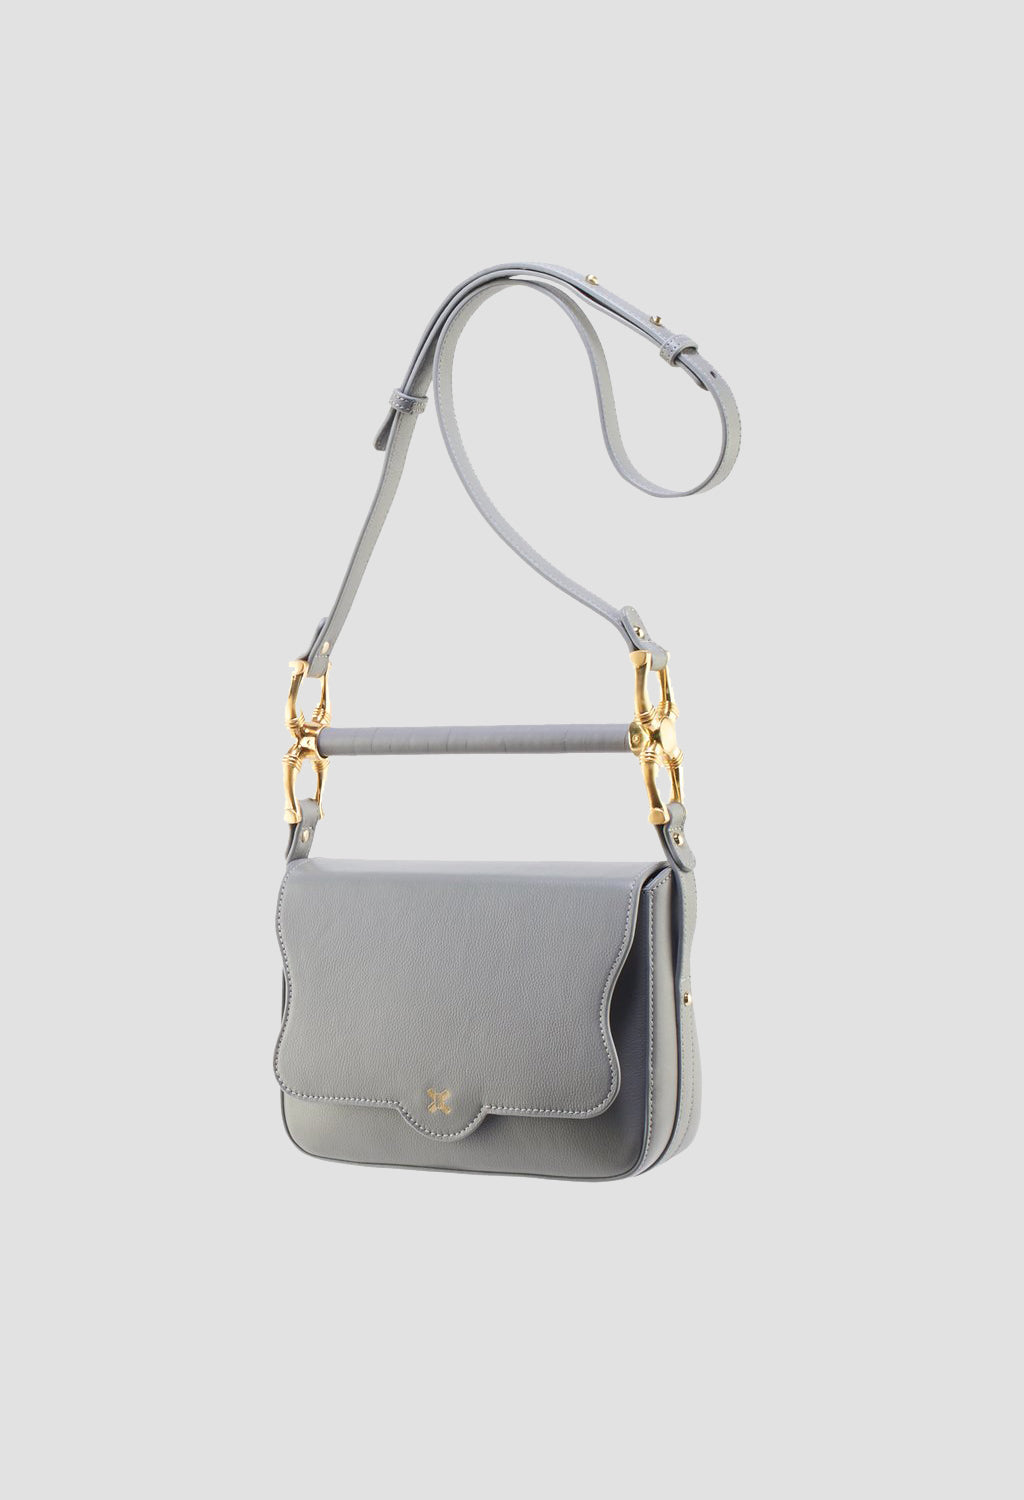 Buy Rome Bag from SANCIA at PAYA boutique